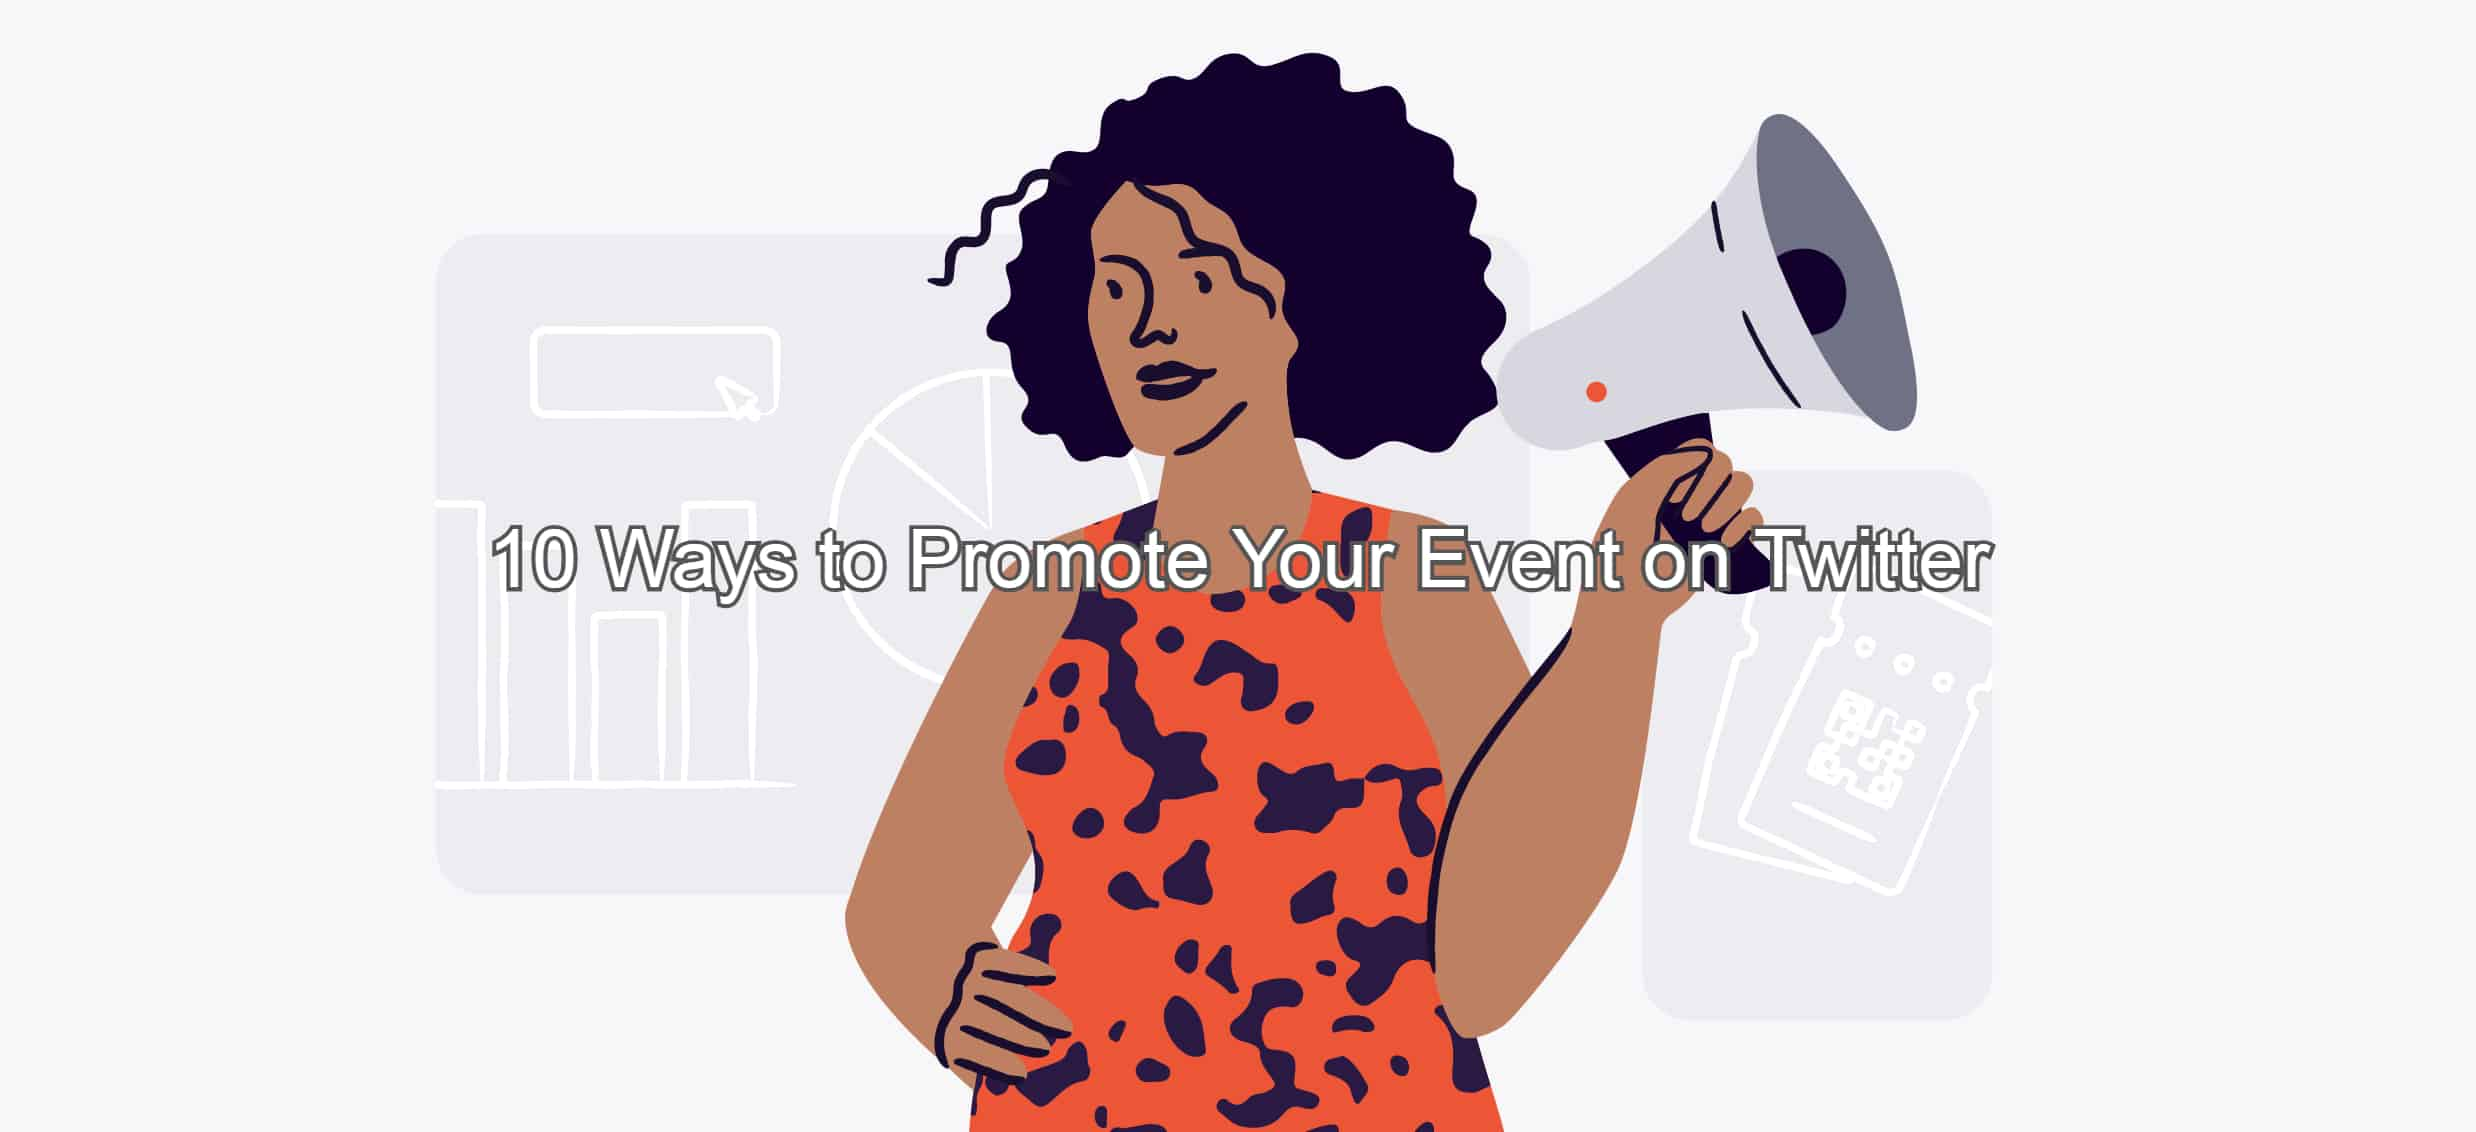 10 Ways to Promote Your Event on Twitter